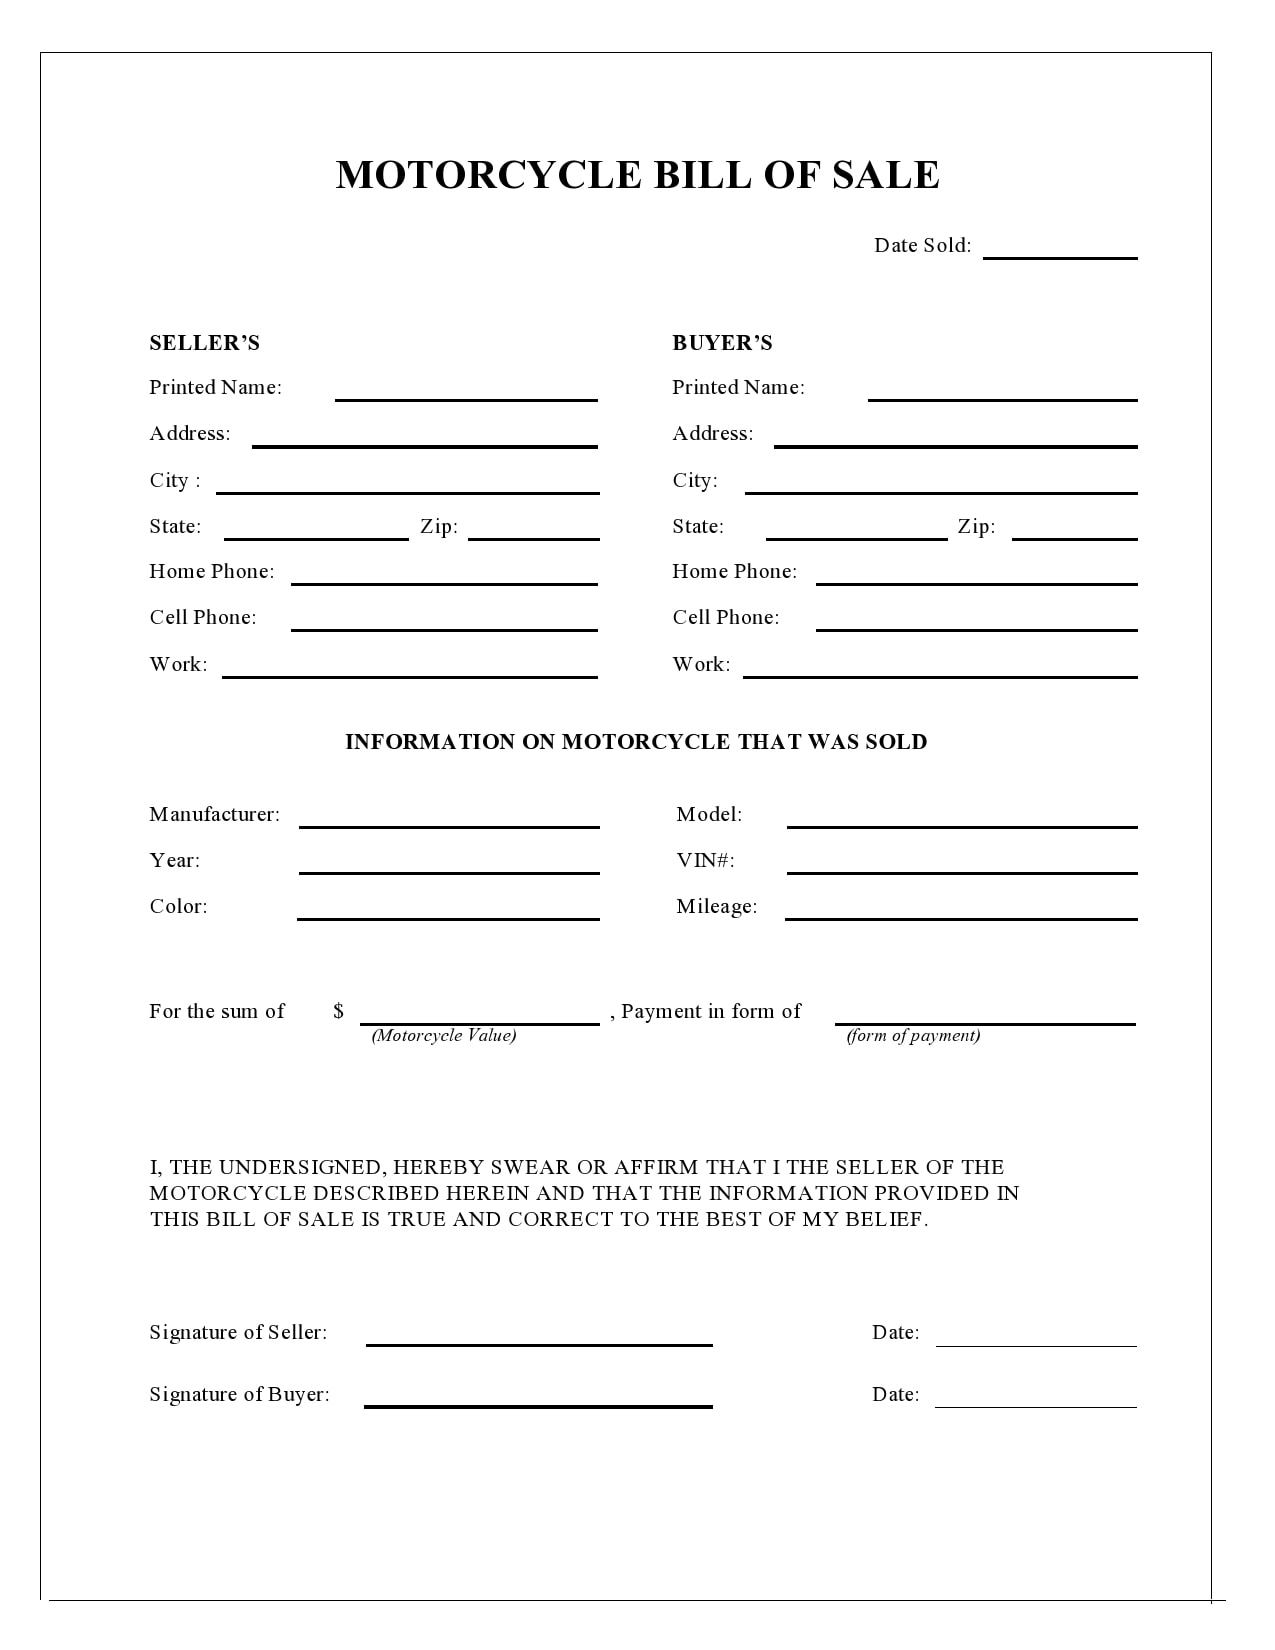 Free Motorcycle Bill of Sale Template